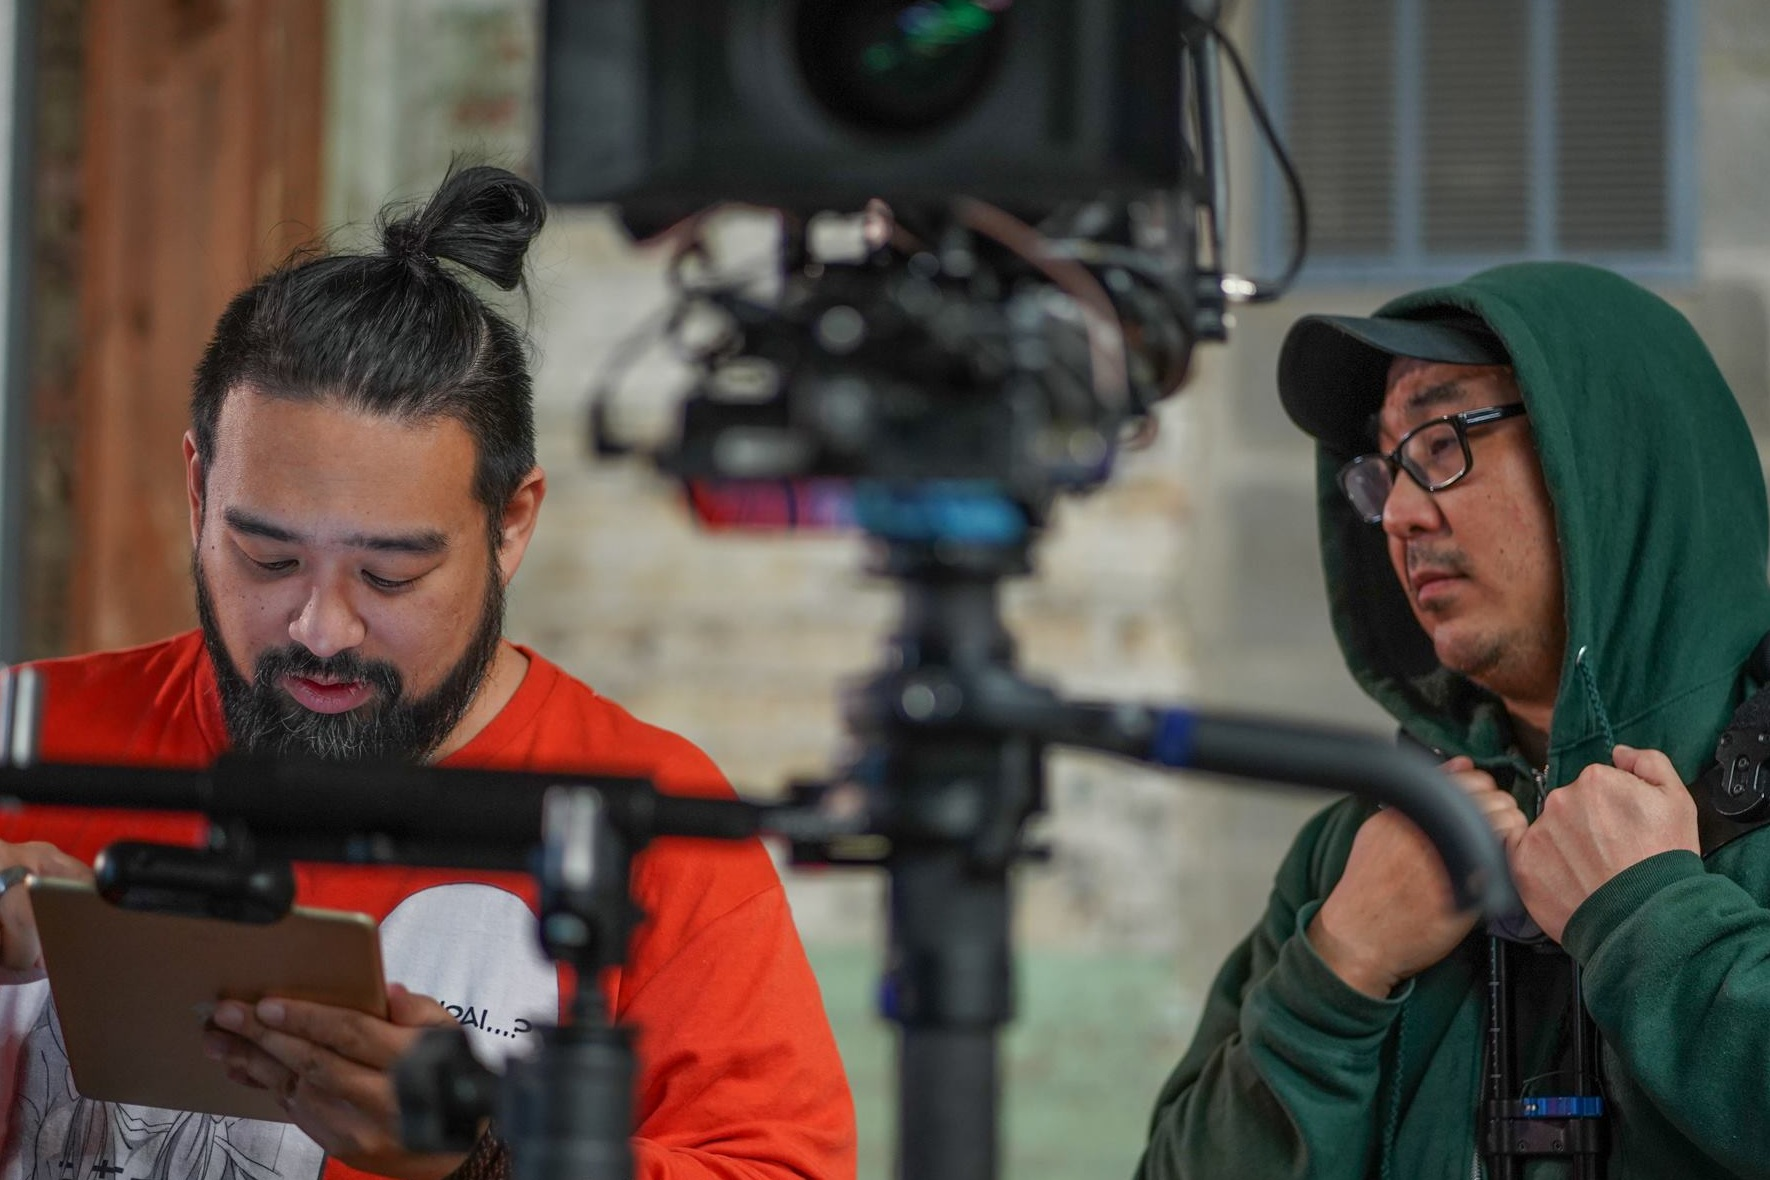 aS INDIE fILMMAKERS AND CREATIVE PROBLEM SOLVERS, WE ENSURE OUR SERVICES LEAD TO THE FULFILLMENT OF YOUR VISION AND SUCCESS. - ASDO Productions